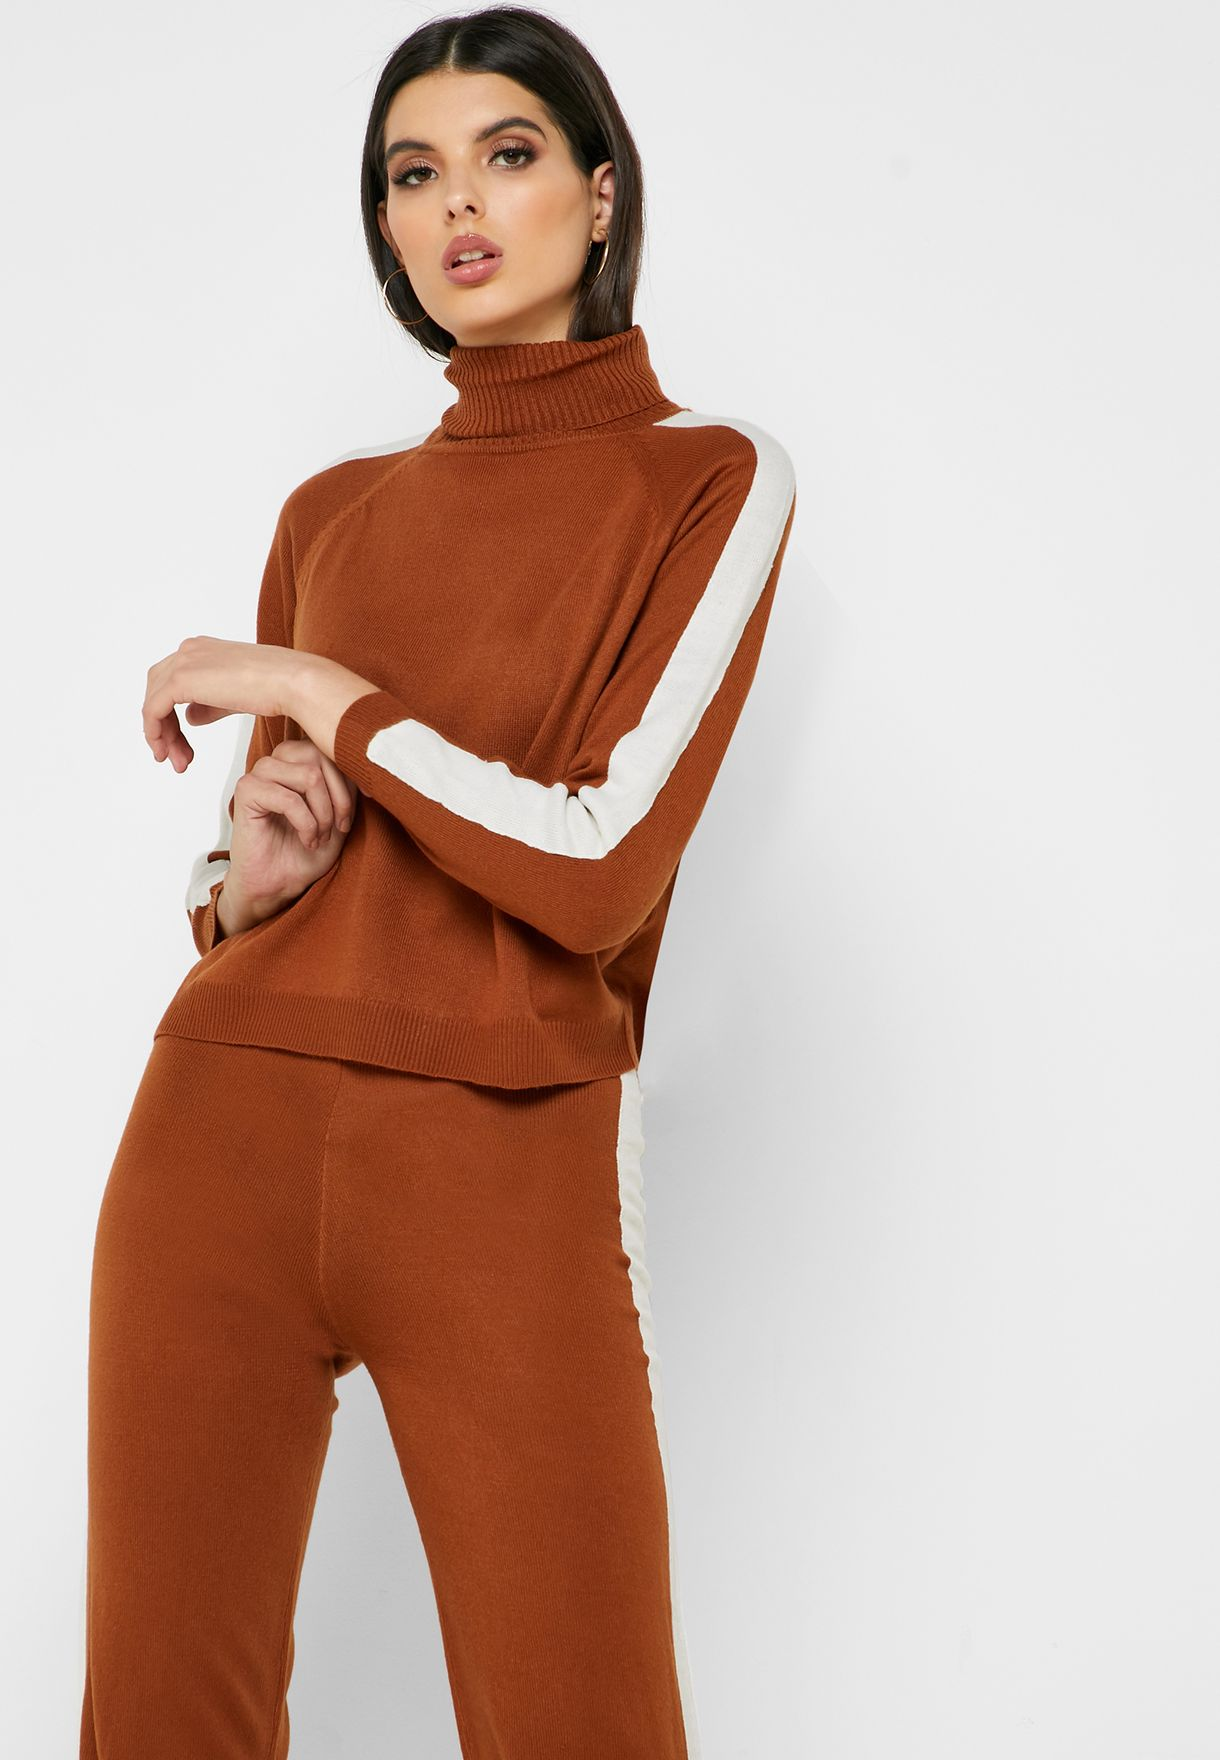 Contrast Side Paneled Knitted Pants Set